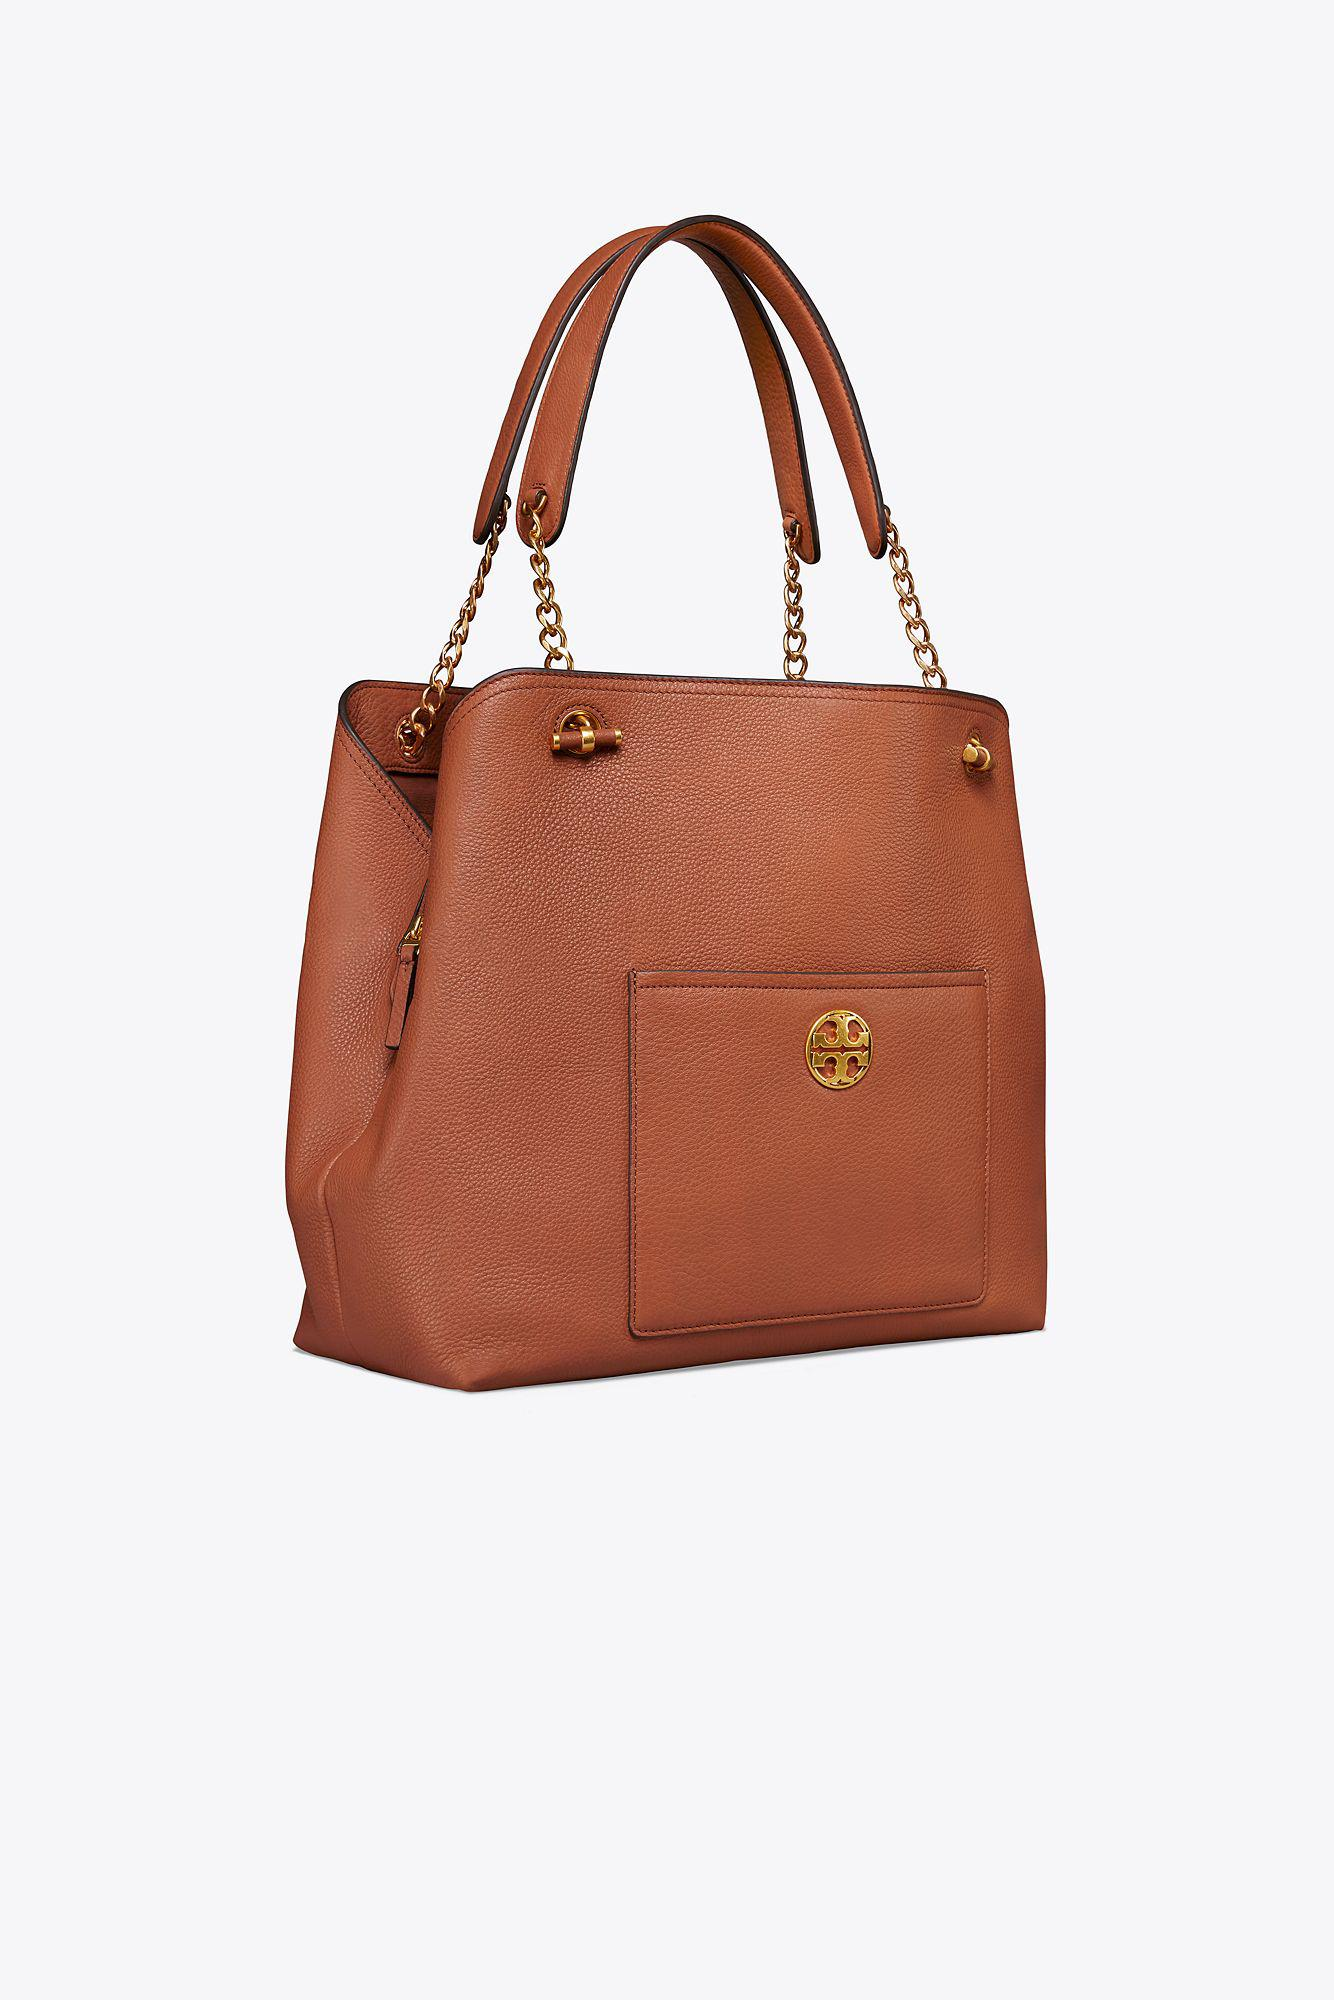 0a3ca1aaa4b Lyst - Tory Burch Chelsea Slouchy Tote in Brown